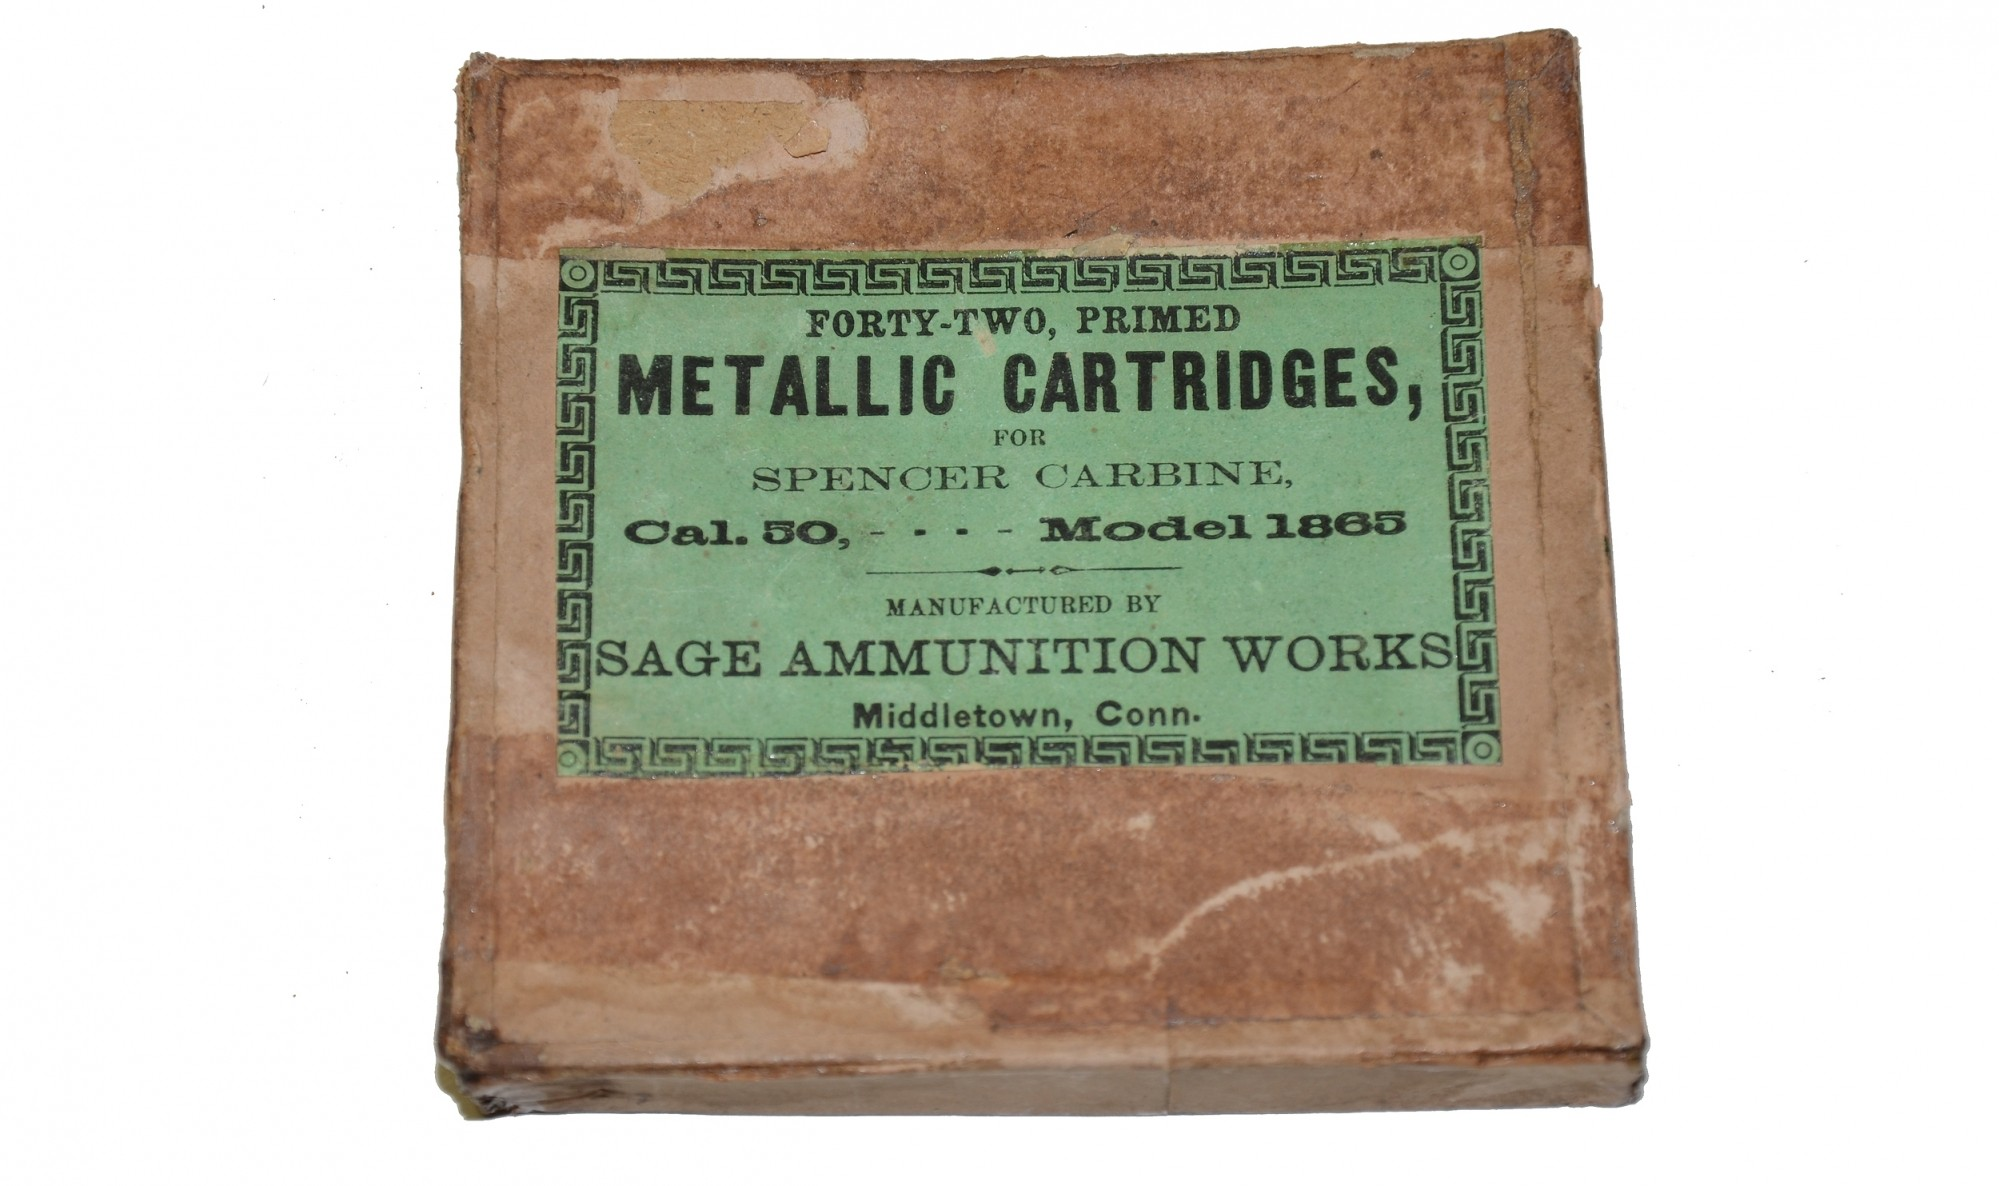 ORIGINAL PACK OF SEVEN 56.50 SPENCER METALLIC RIMFIRE CARTRIDGES BY D. C. SAGE, IN A PARTIAL ORIGINAL BOX